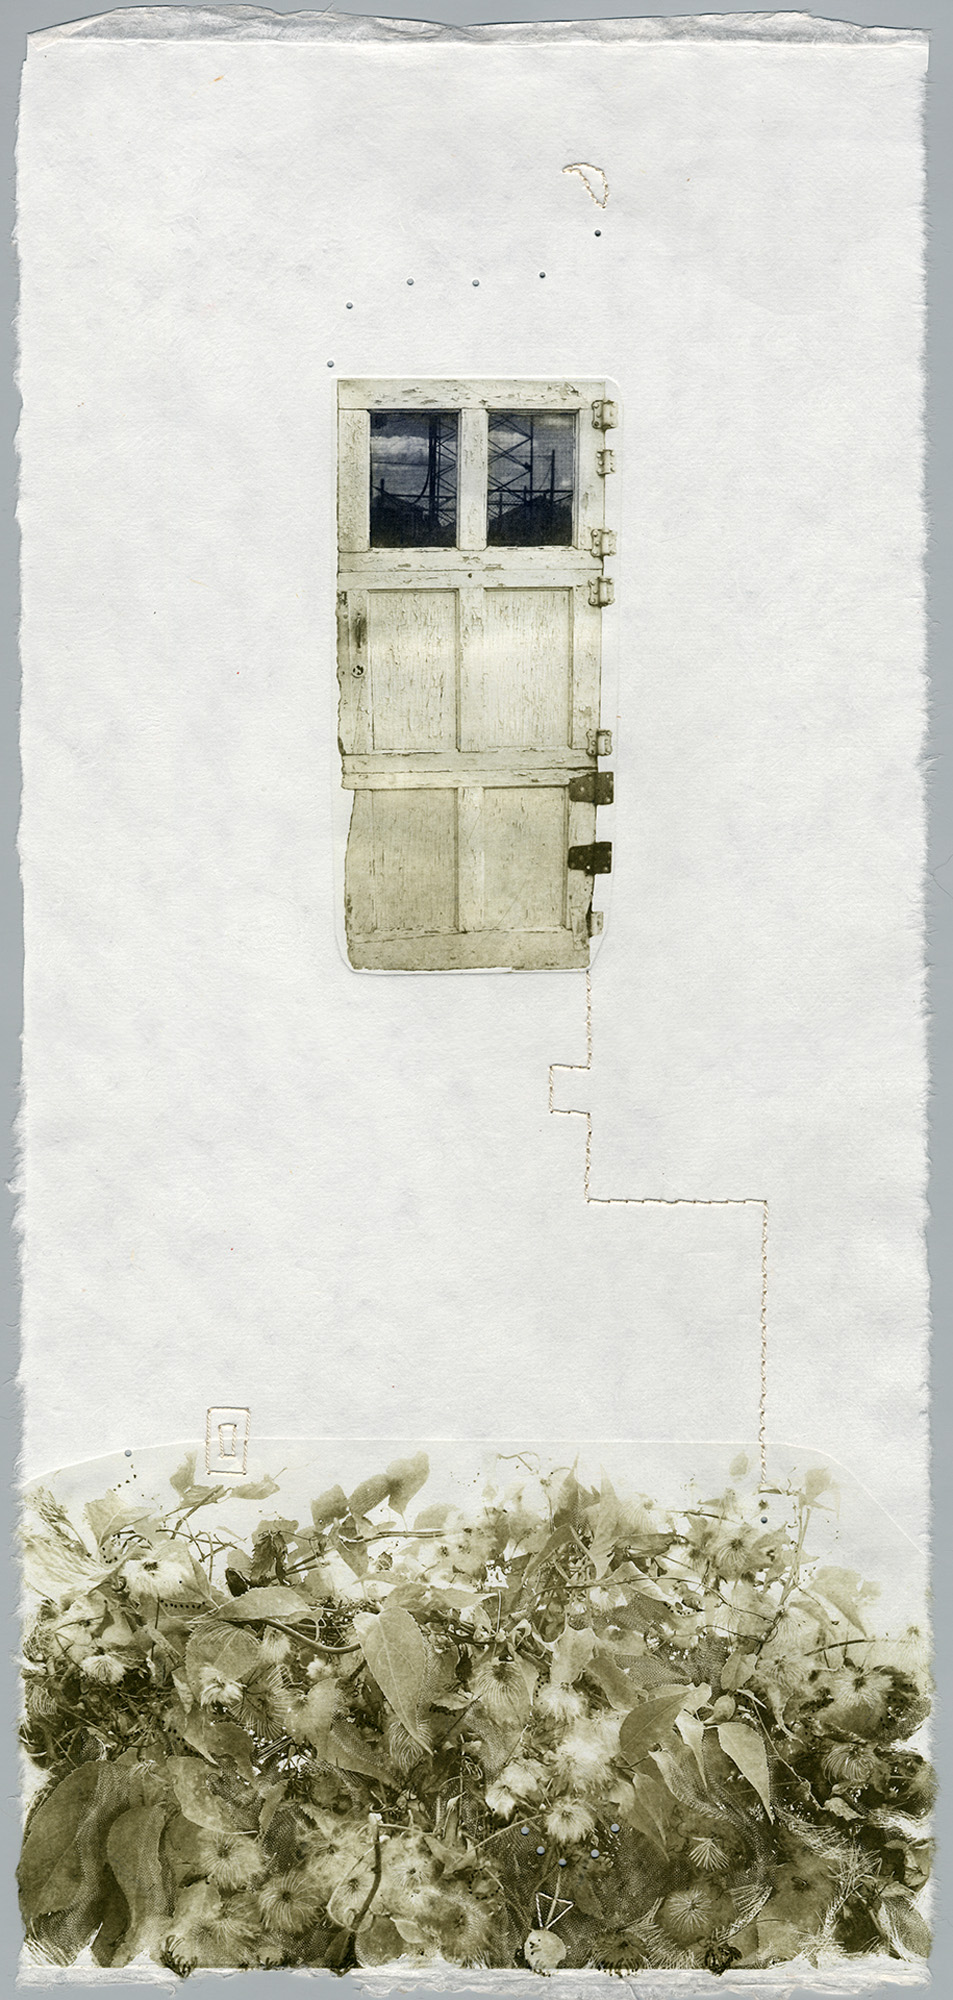 Rhea Nowak    Sanctuary  Intaglio, stitching, perforations 22.2 x 10.5 inches, APS 240G